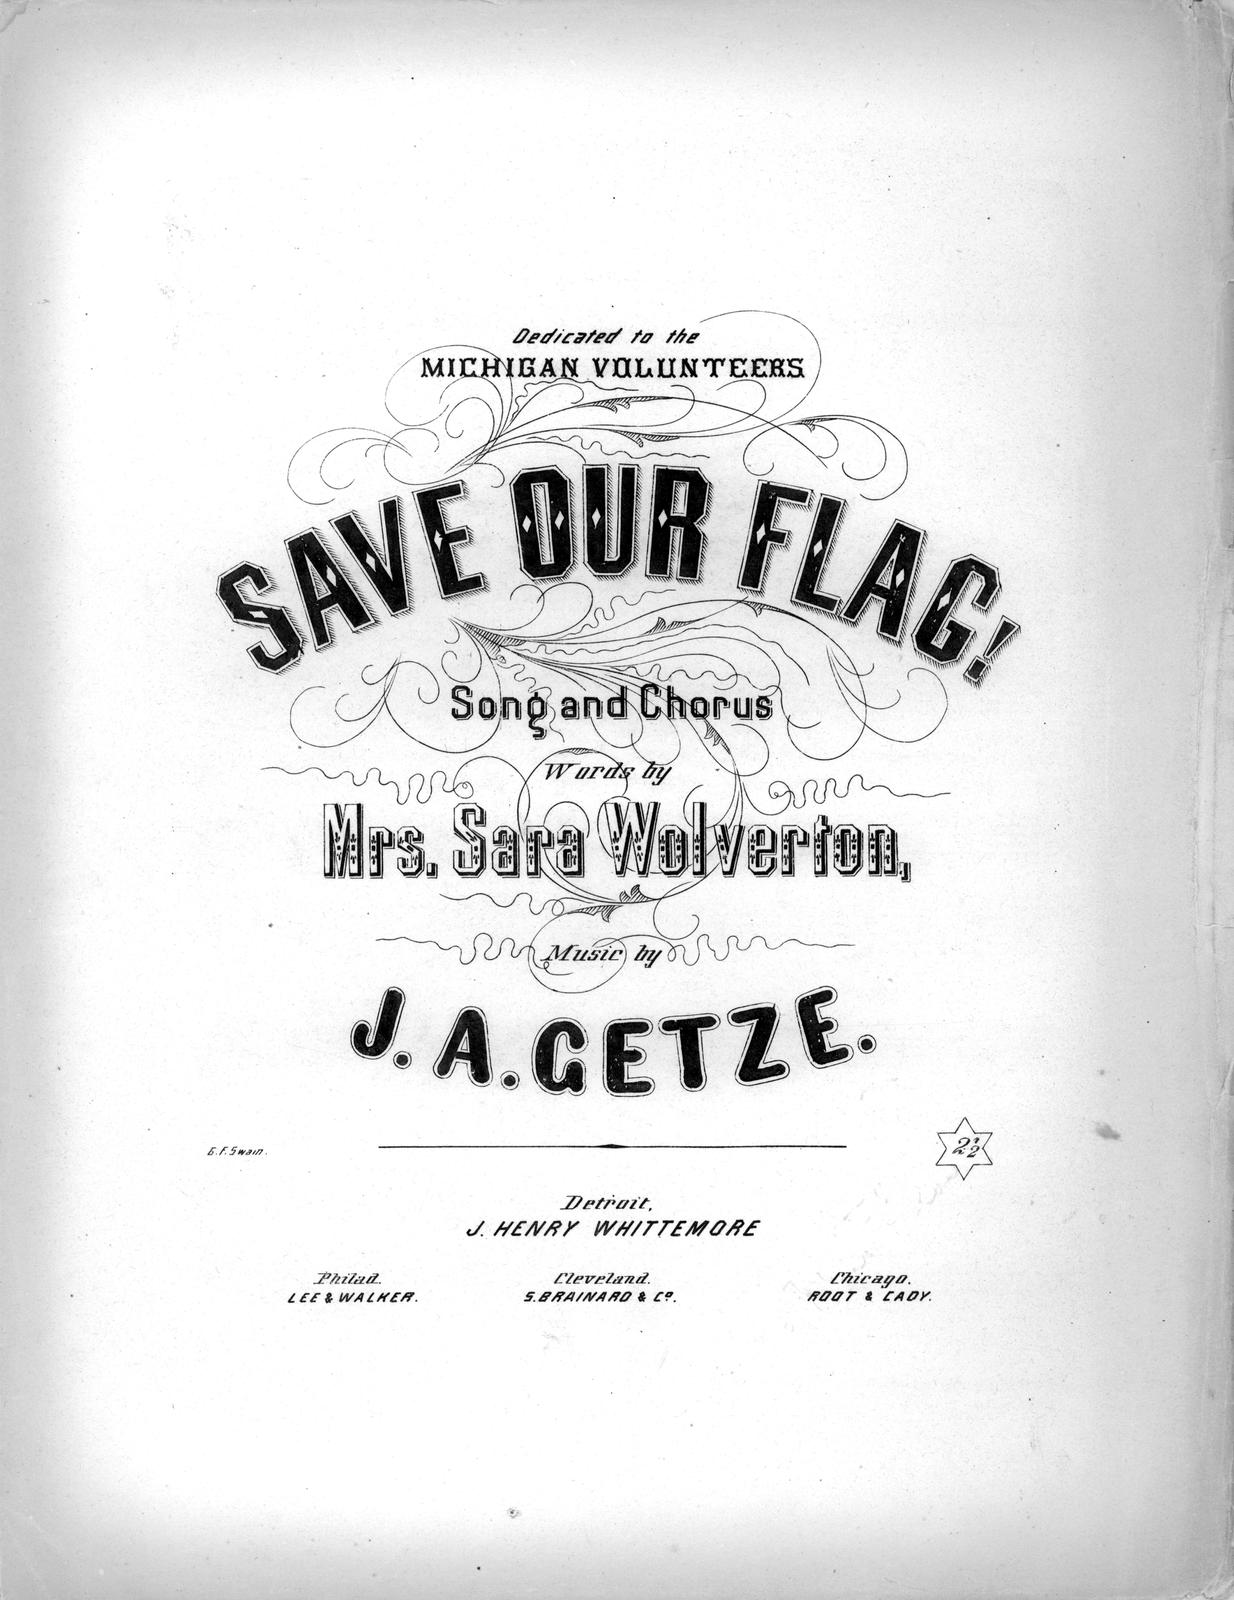 Save our flag: song and chorus words by Mrs. Sara Wolverton; music by J. A. Getze.